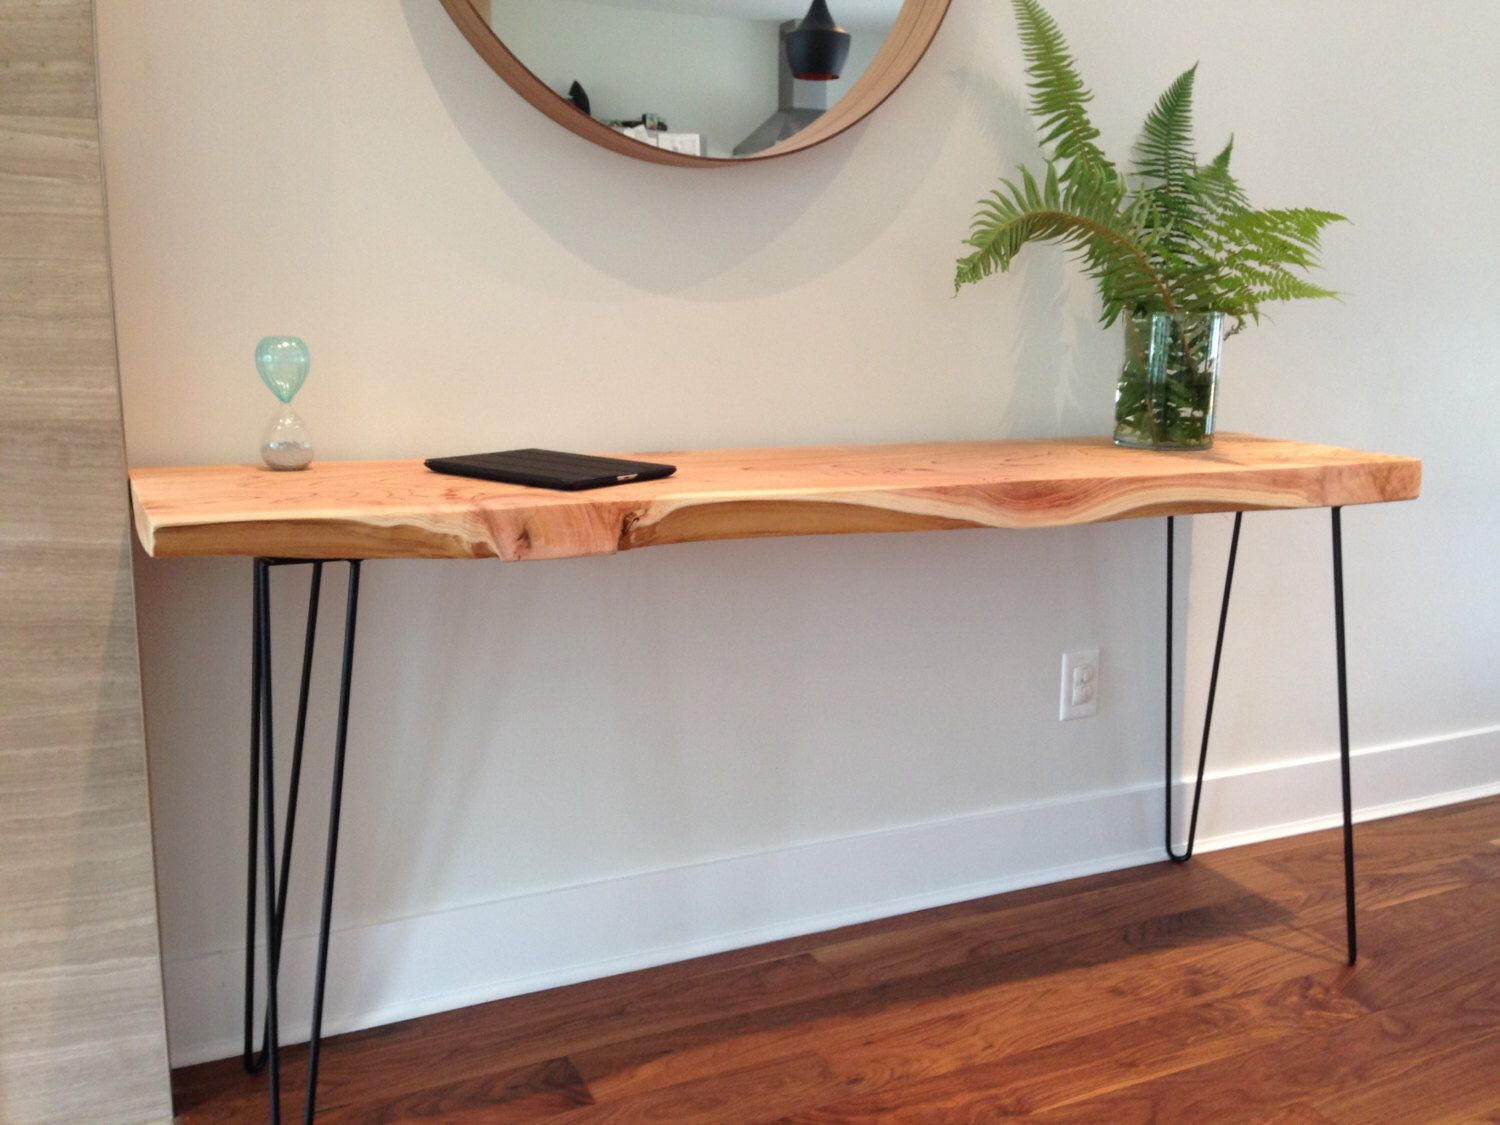 Items Similar To Console Table  Wood Desk  Plant Stand  Sofa Table Entryway  Table Mid Century Hairpin Legs  W X L X H X T Vancouver, BC On Etsy